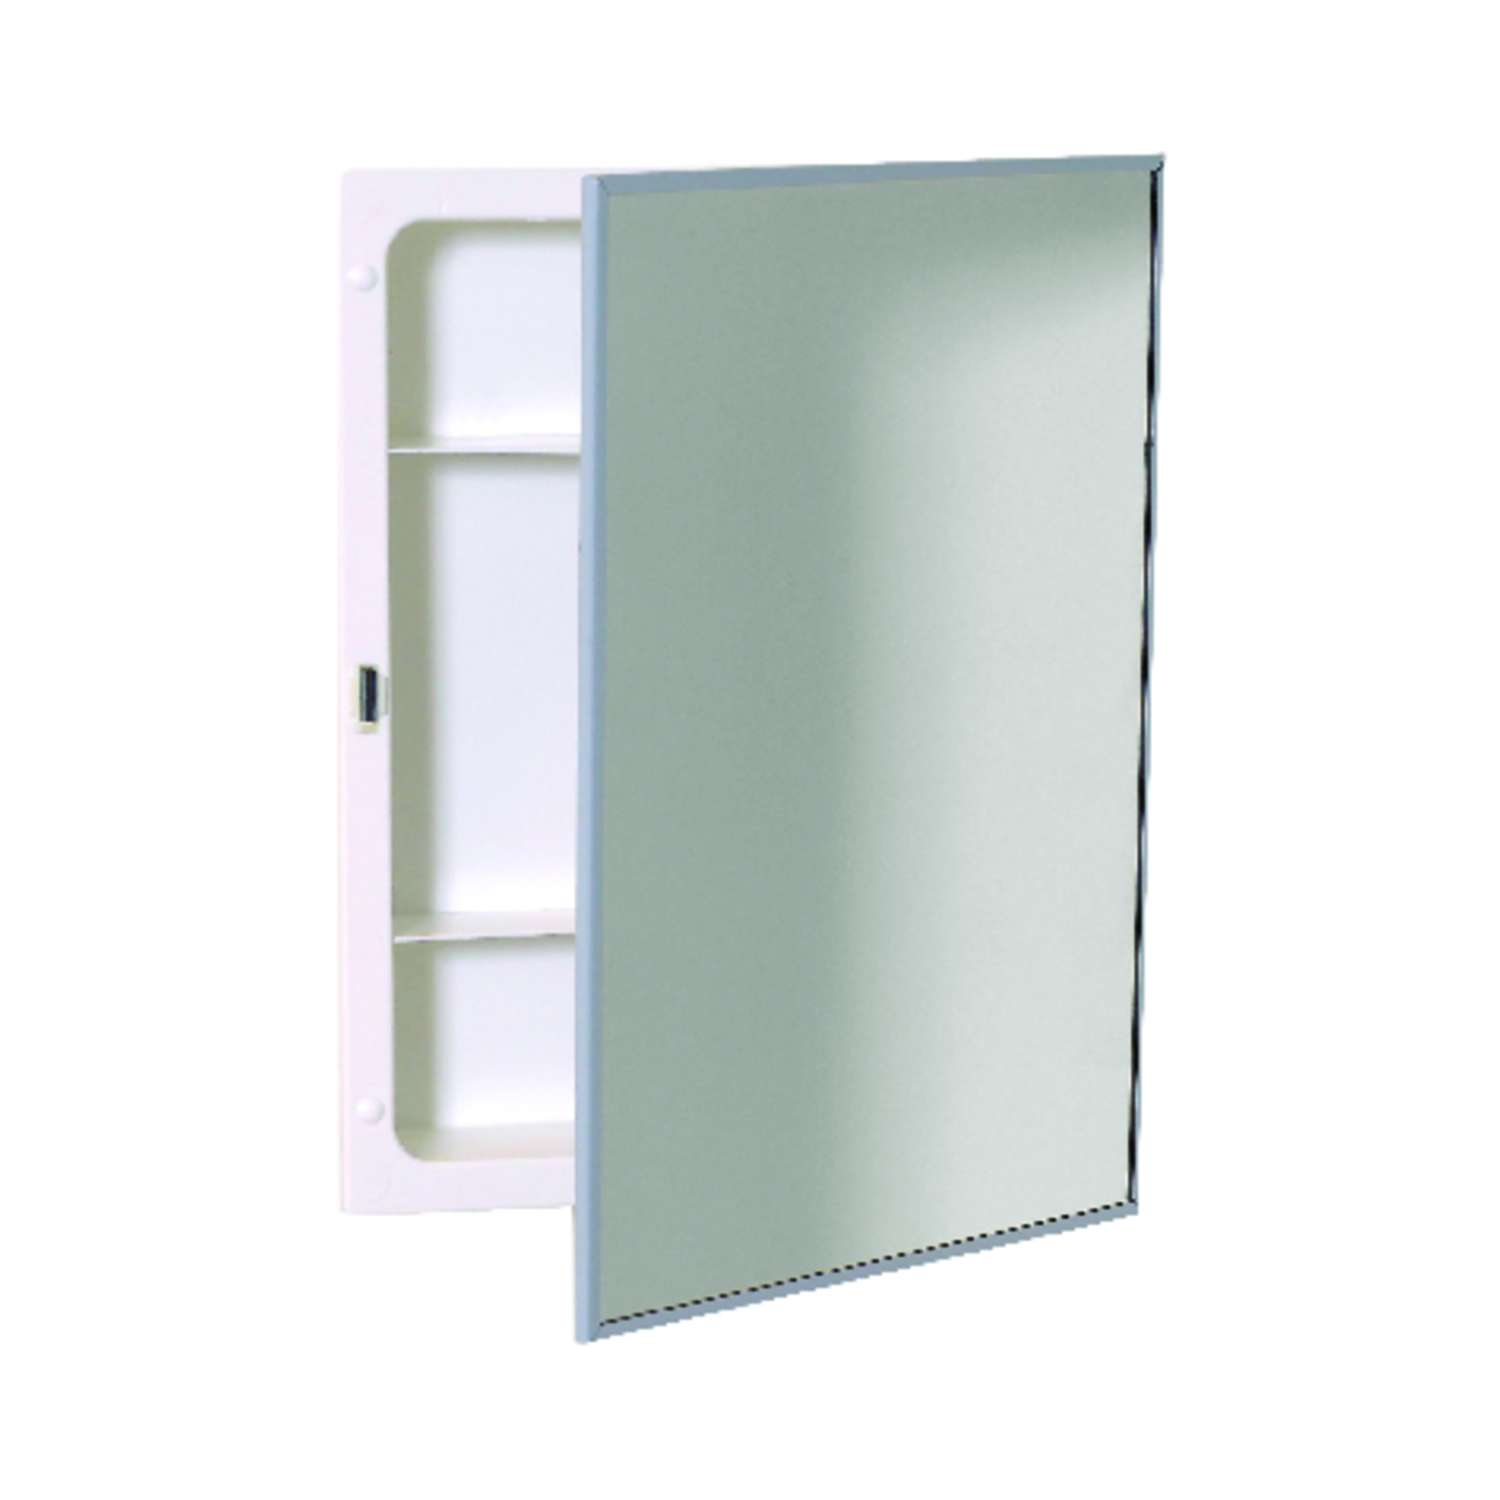 medium resolution of zenith 20 1 8 in h x 16 1 8 in w x 3 25 in d rectangle medicine cabinet ace hardware